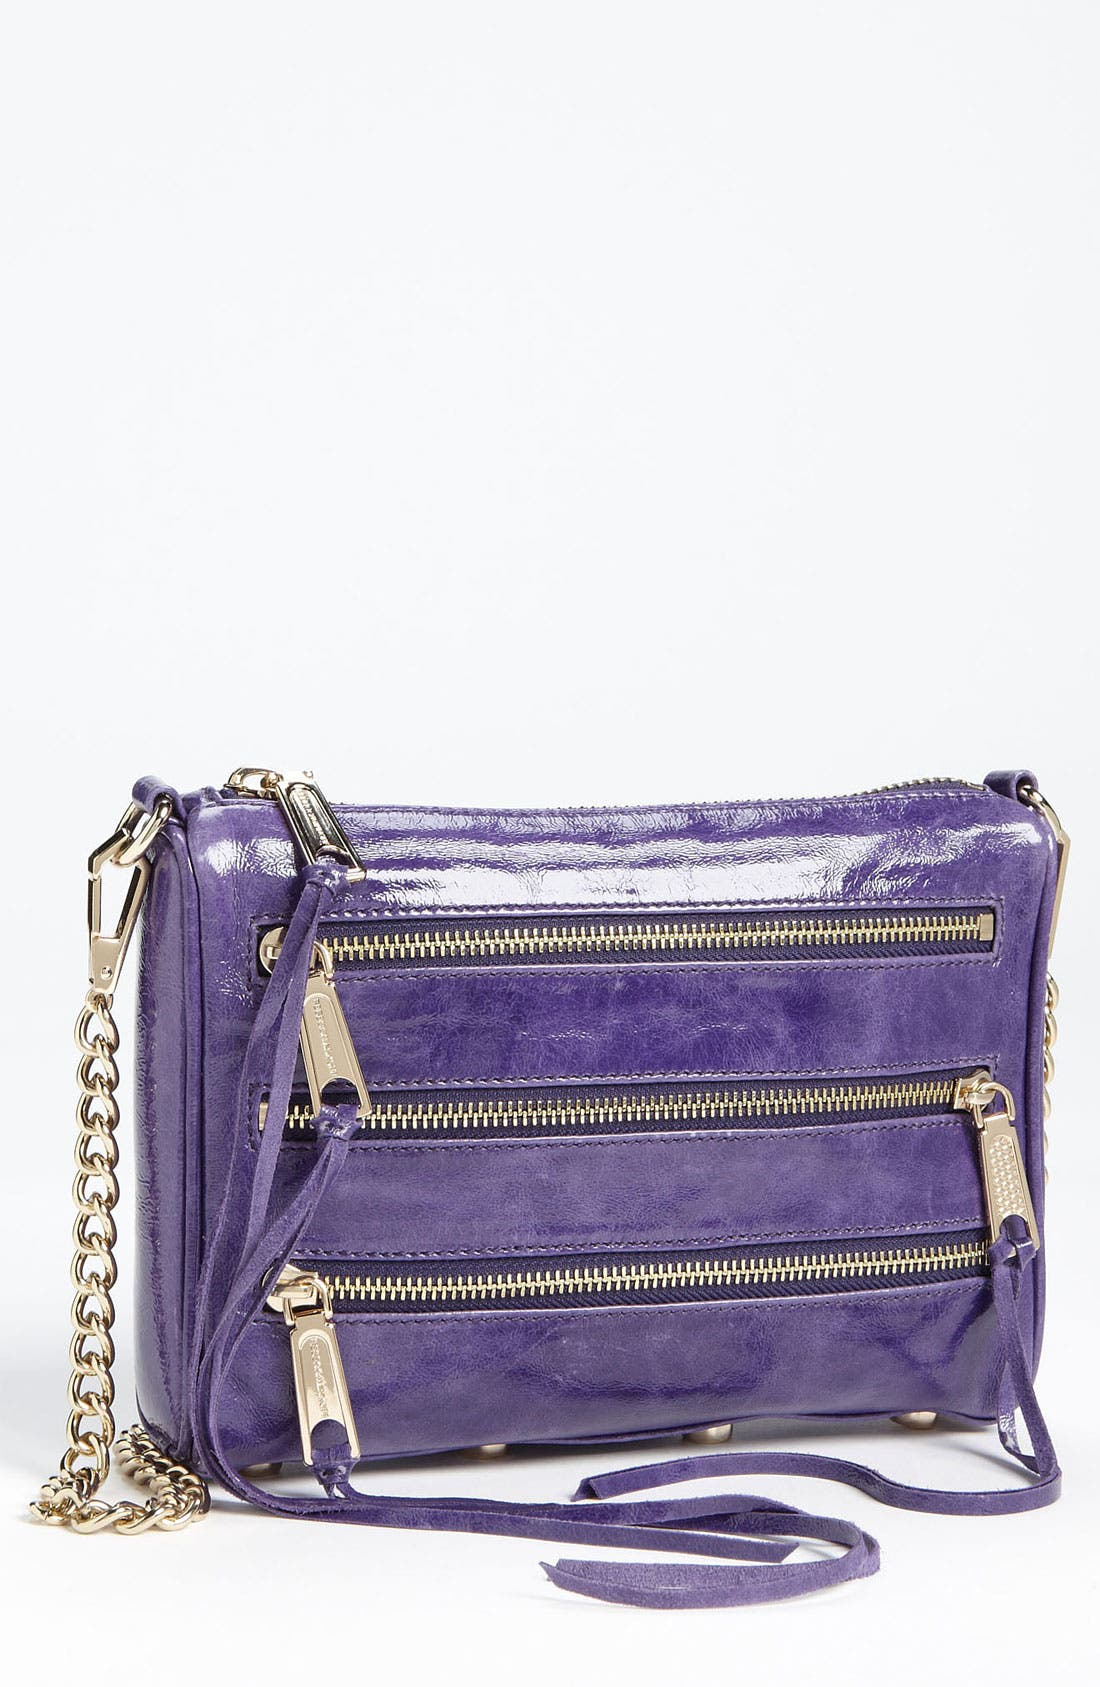 Alternate Image 1 Selected - Rebecca Minkoff '5 Zip - Mini' Crossbody Bag